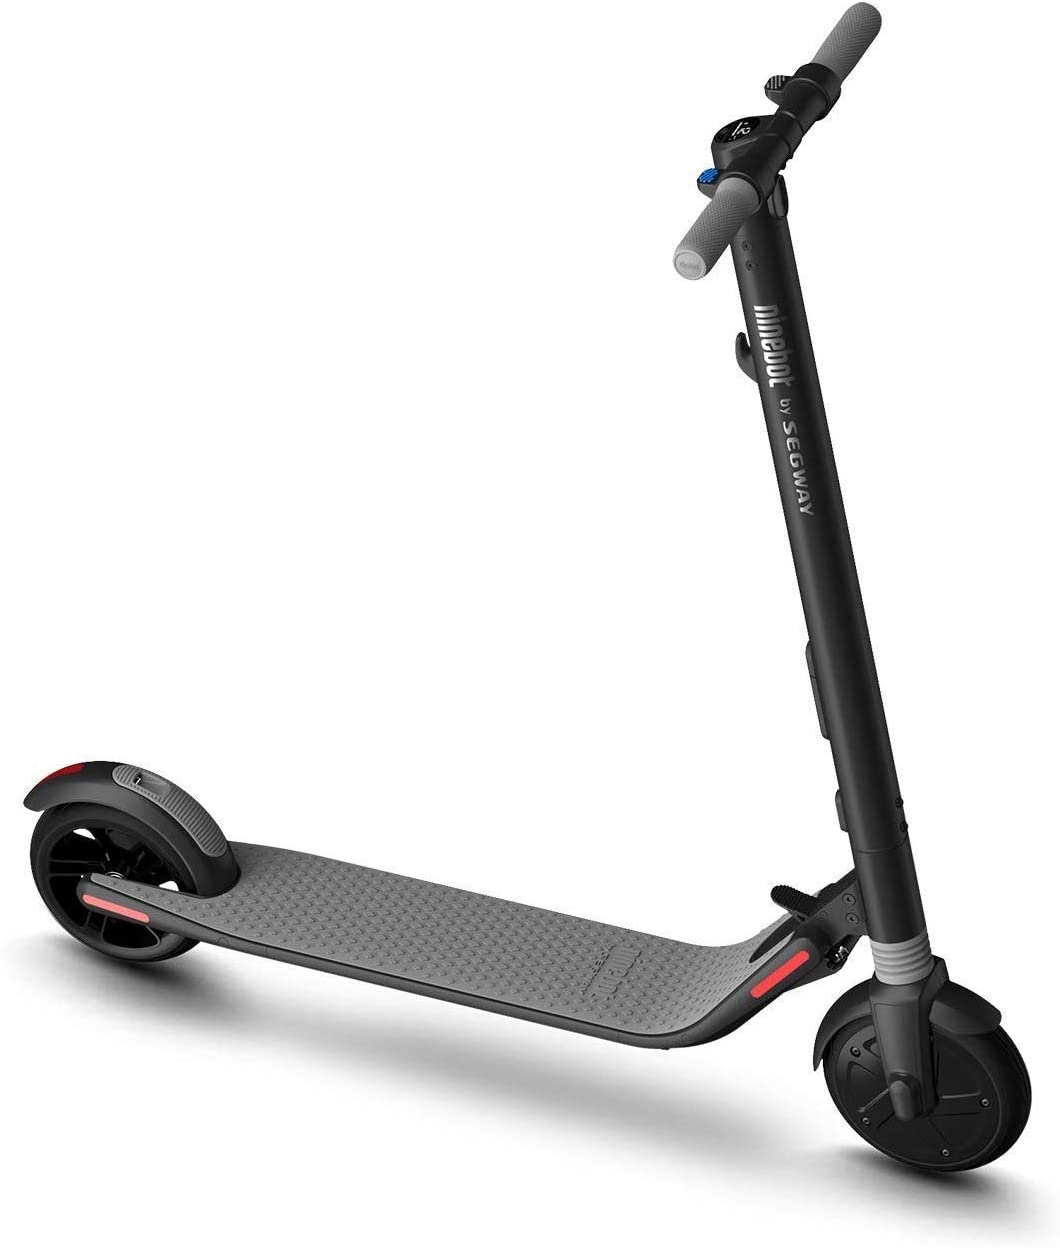 Segway Ninebot ES1 Gen2 carbon fiber Electric Scooter